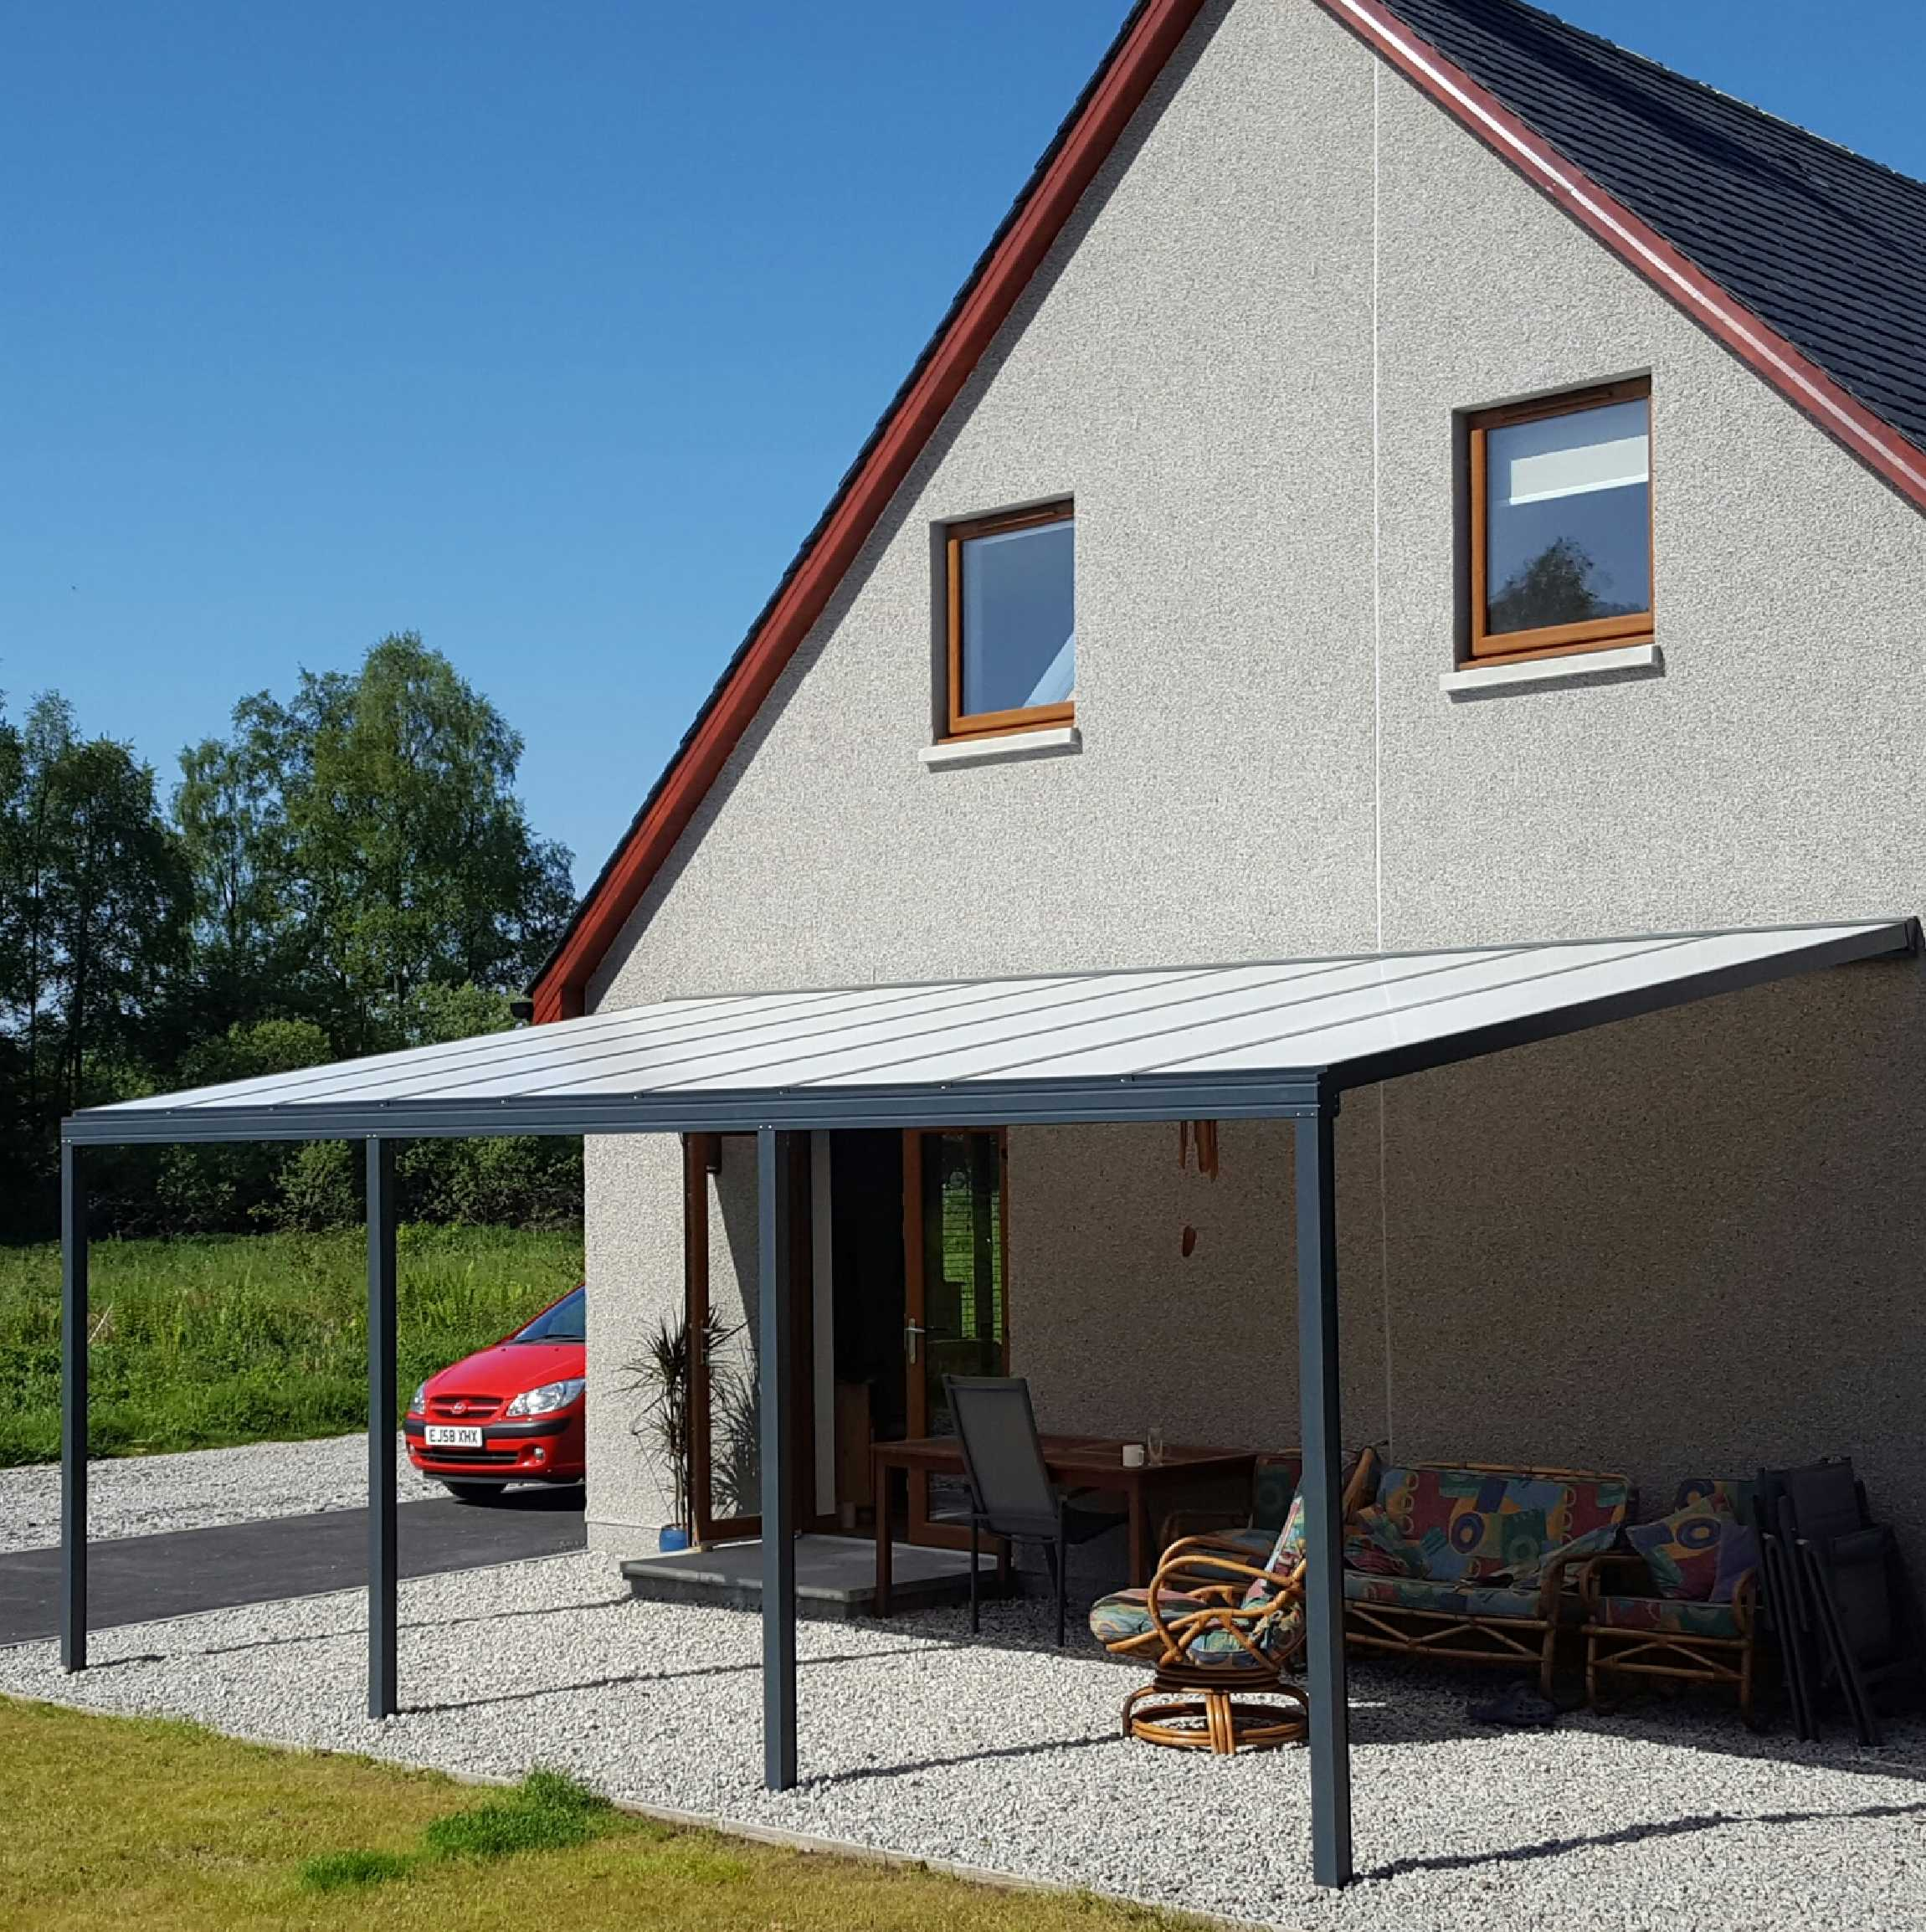 Great selection of Omega Smart Lean-To Canopy, Anthracite Grey, 16mm Polycarbonate Glazing - 9.9m (W) x 3.5m (P), (5) Supporting Posts